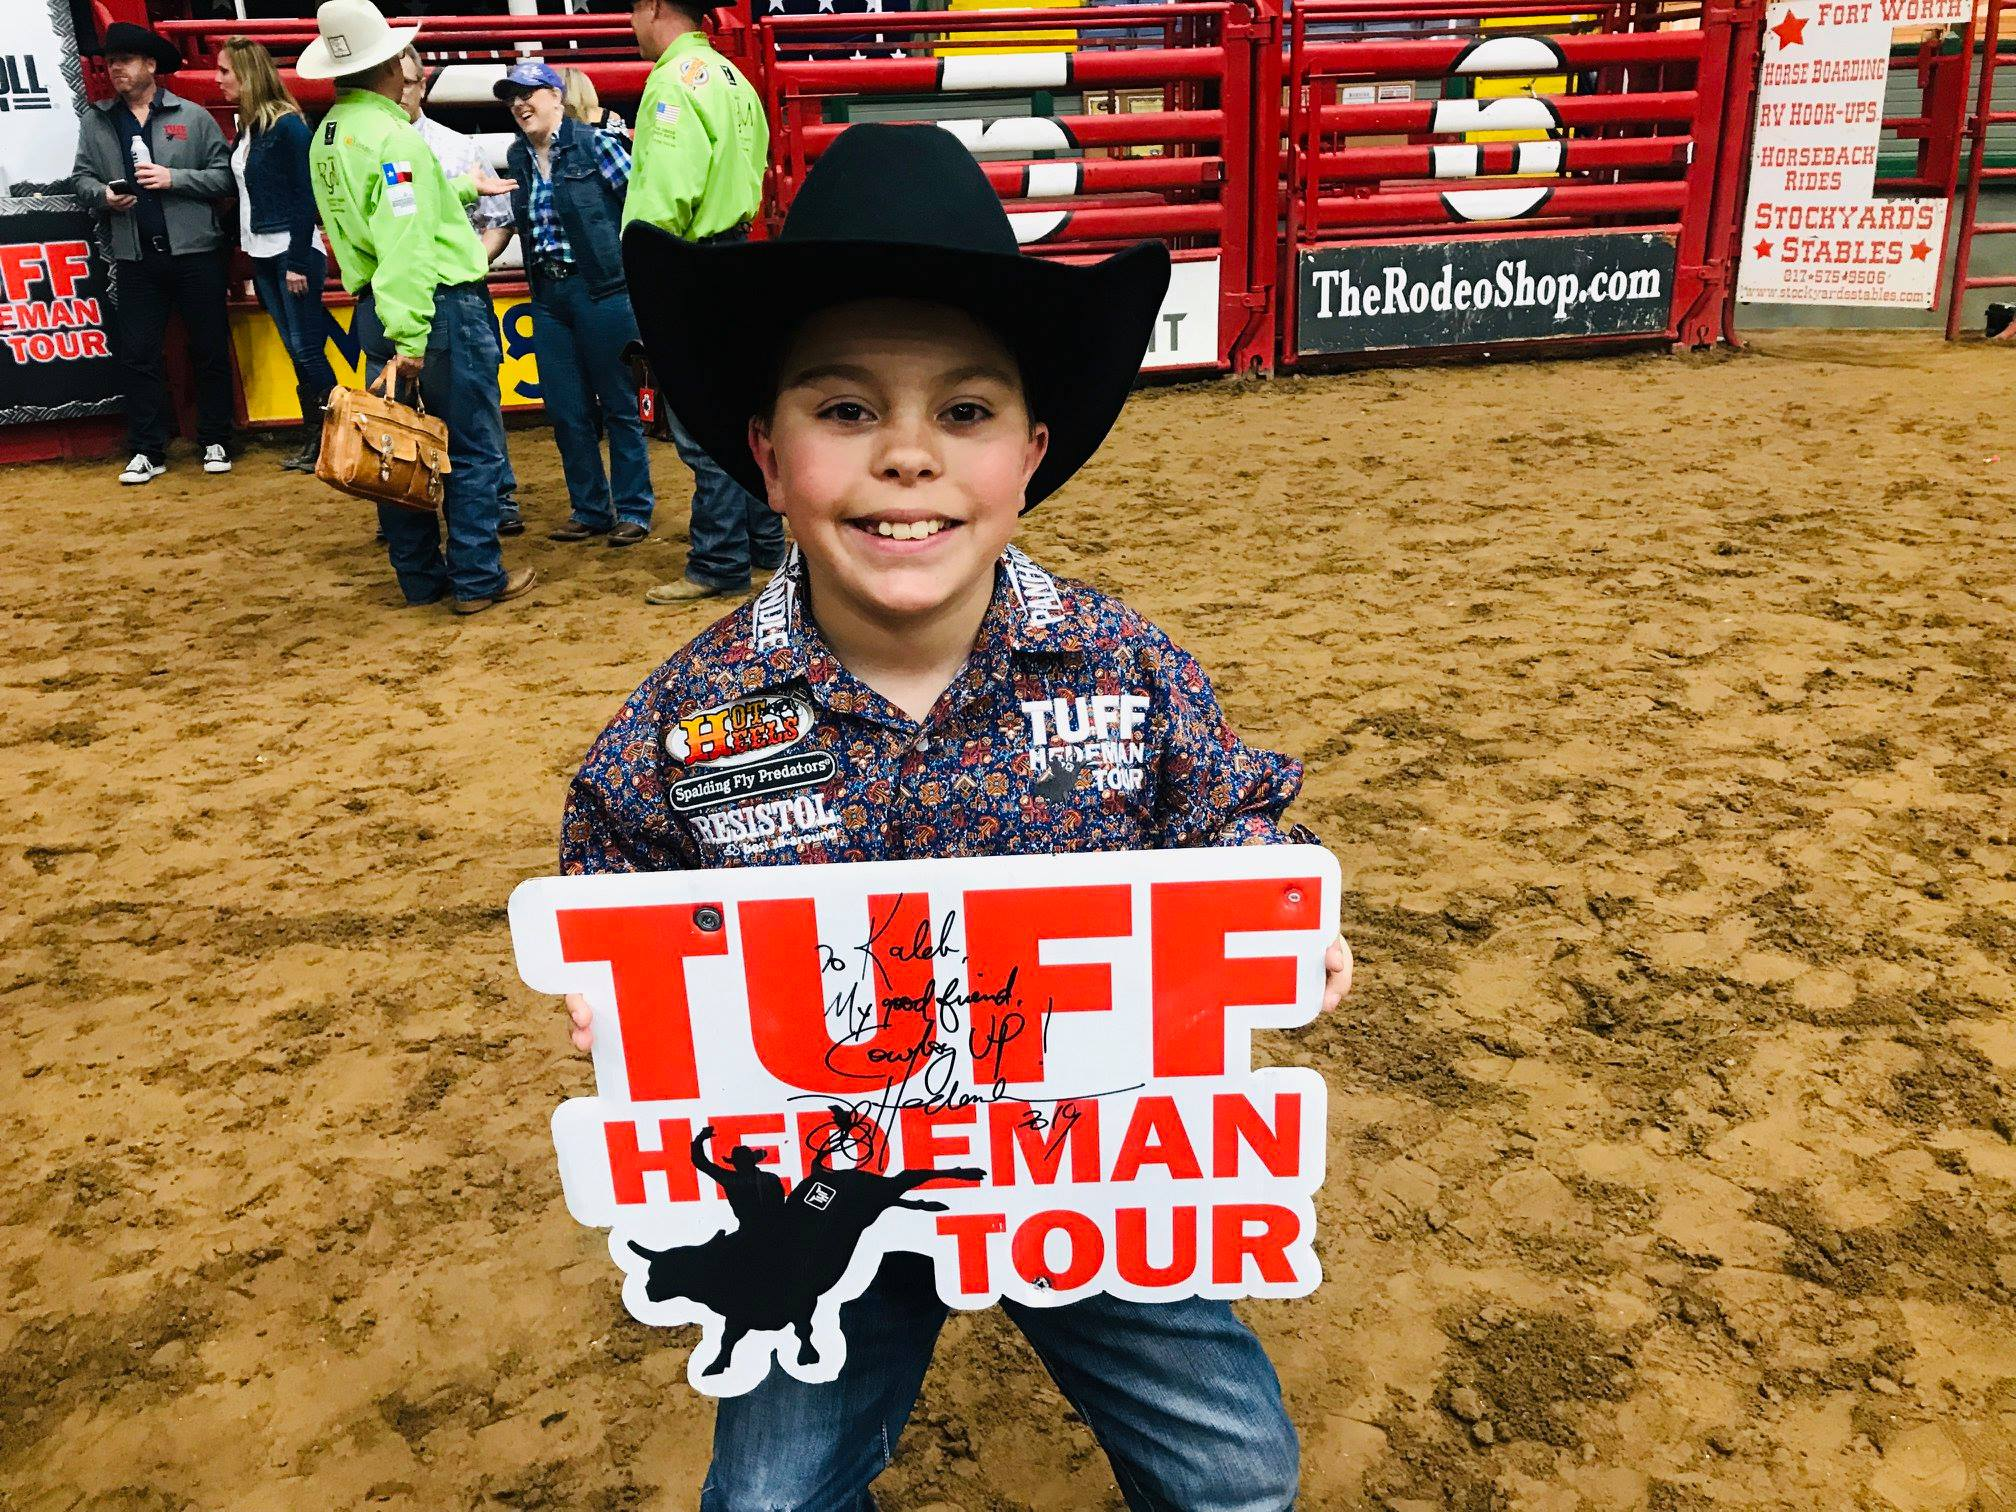 Next Level Bull Riding adds Big Rock, Ilinois to the Tuff Hedeman Bull Riding Breakout Series Midwest Swing